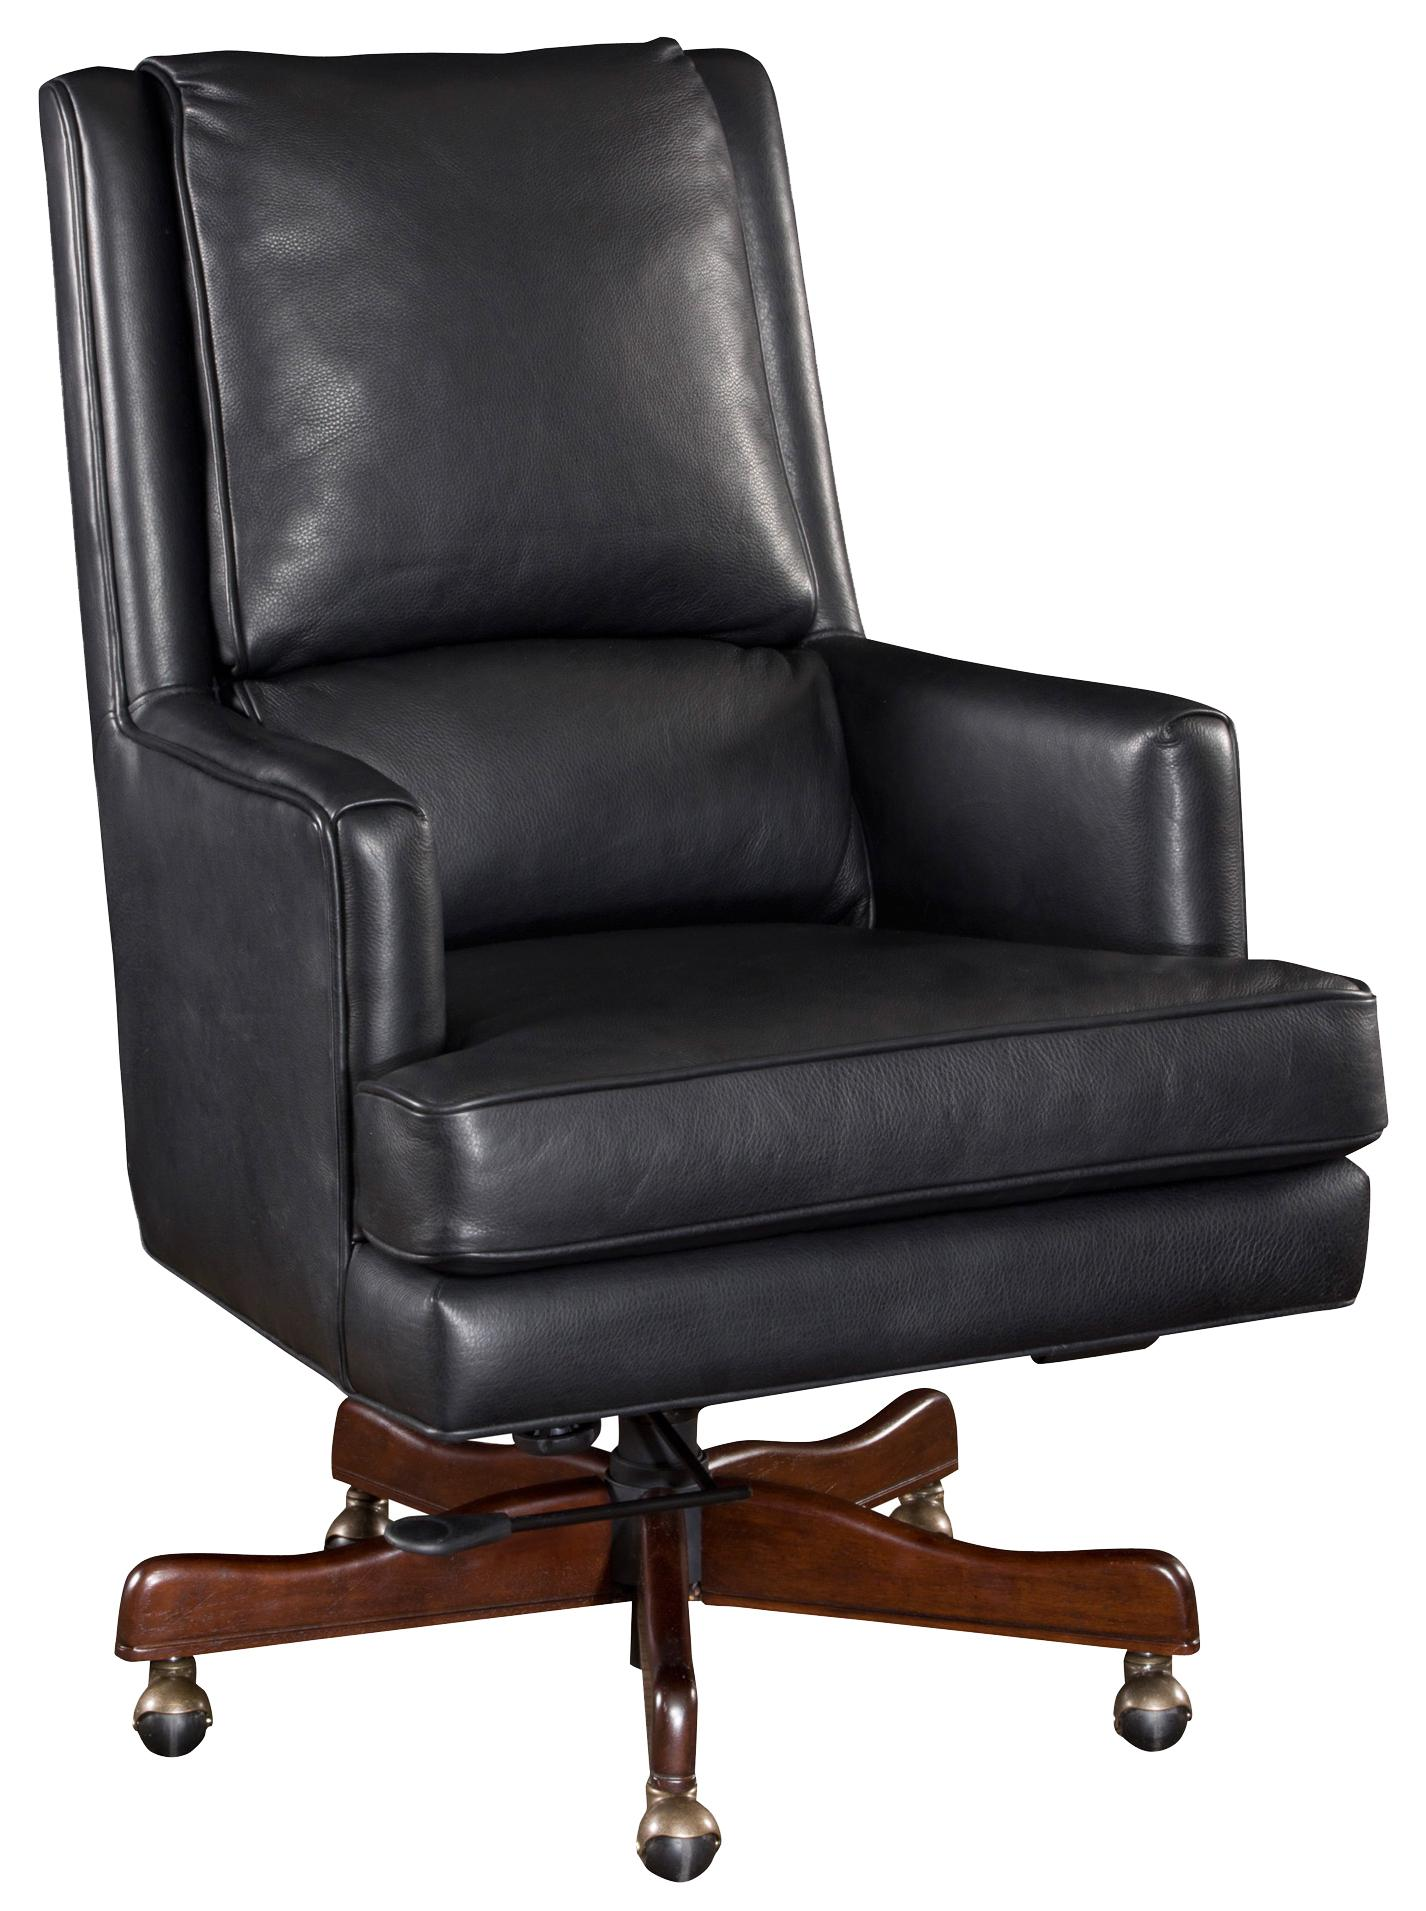 Hooker Leather Chair Hooker Furniture Executive Seating Ec387 099 Upholstered